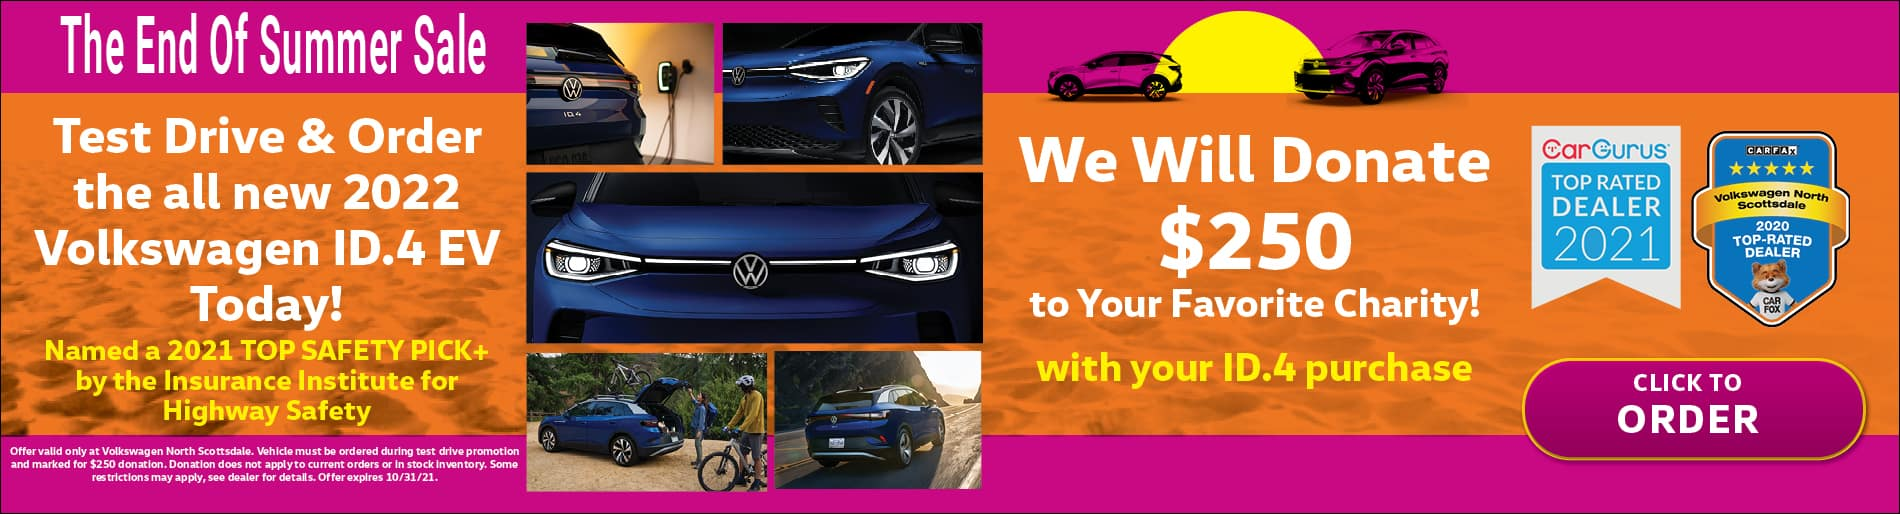 Test drive & order the all new 2022 VW ID.4 EV and we will donate $25 to your favorite charity